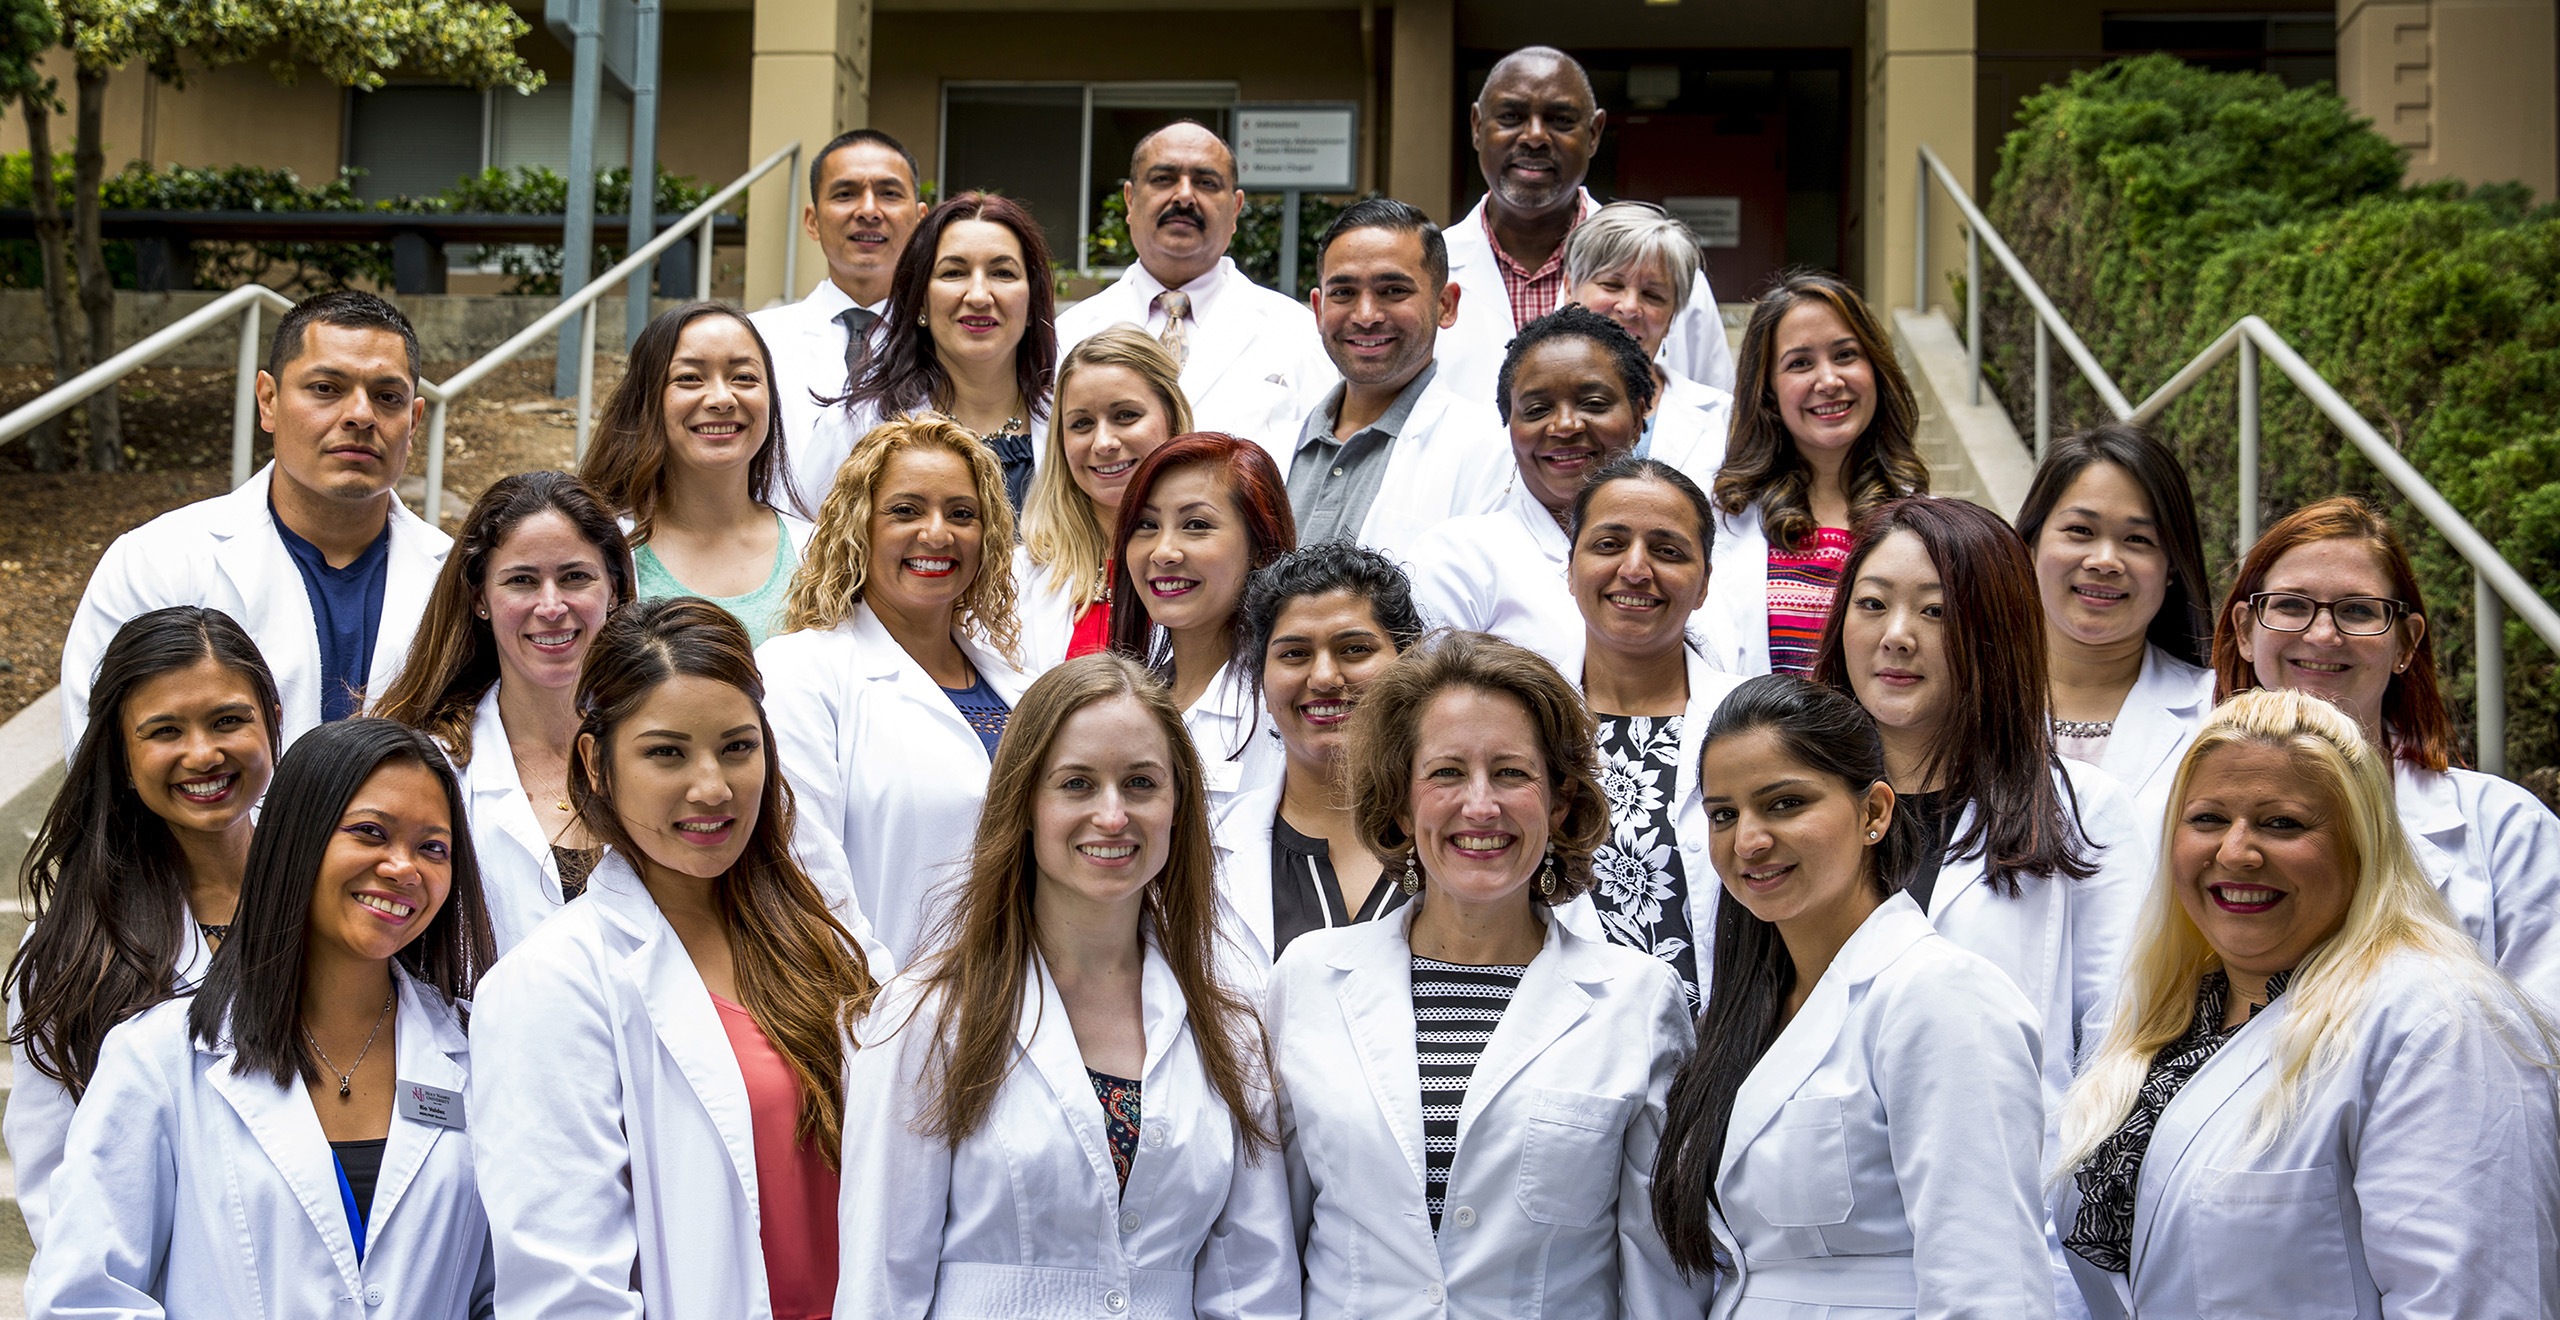 Holy Name University MSN students in their white coats on campus steps